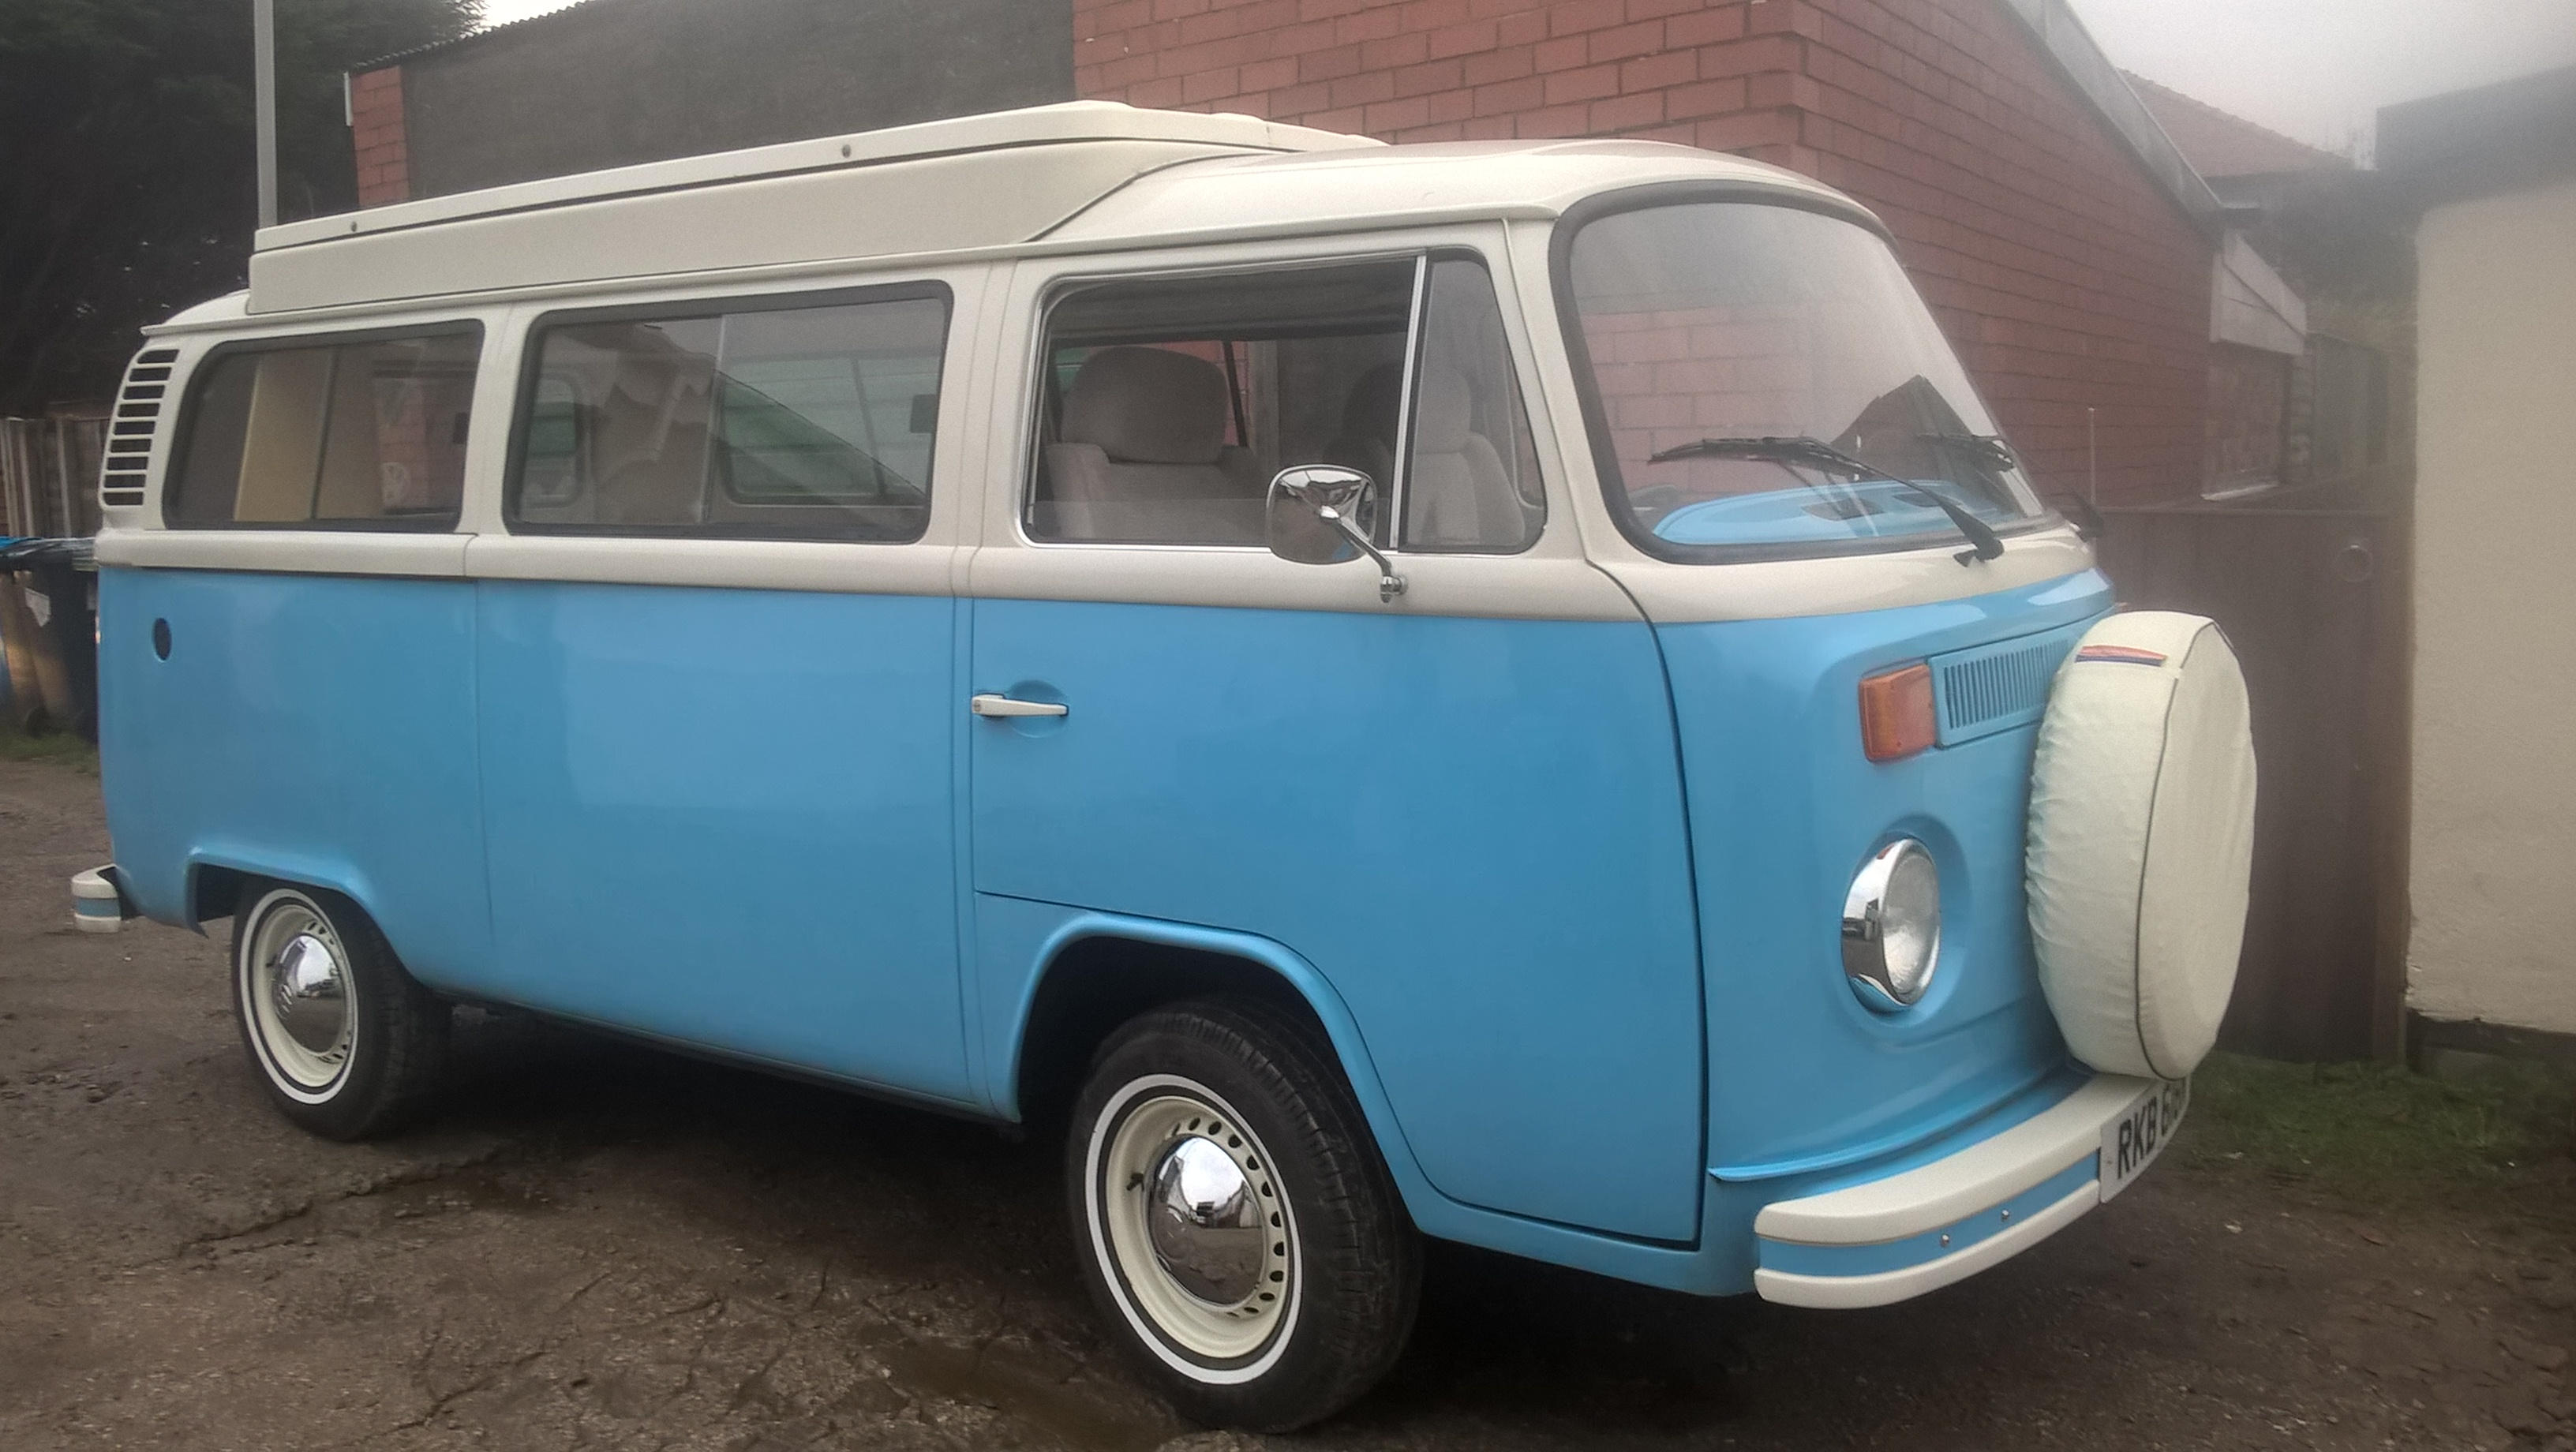 buy for best is sale can campers passenger and camper only vw the classic a seven toronto van in interior its with black volkswagen right now km original comes has you folding rare this